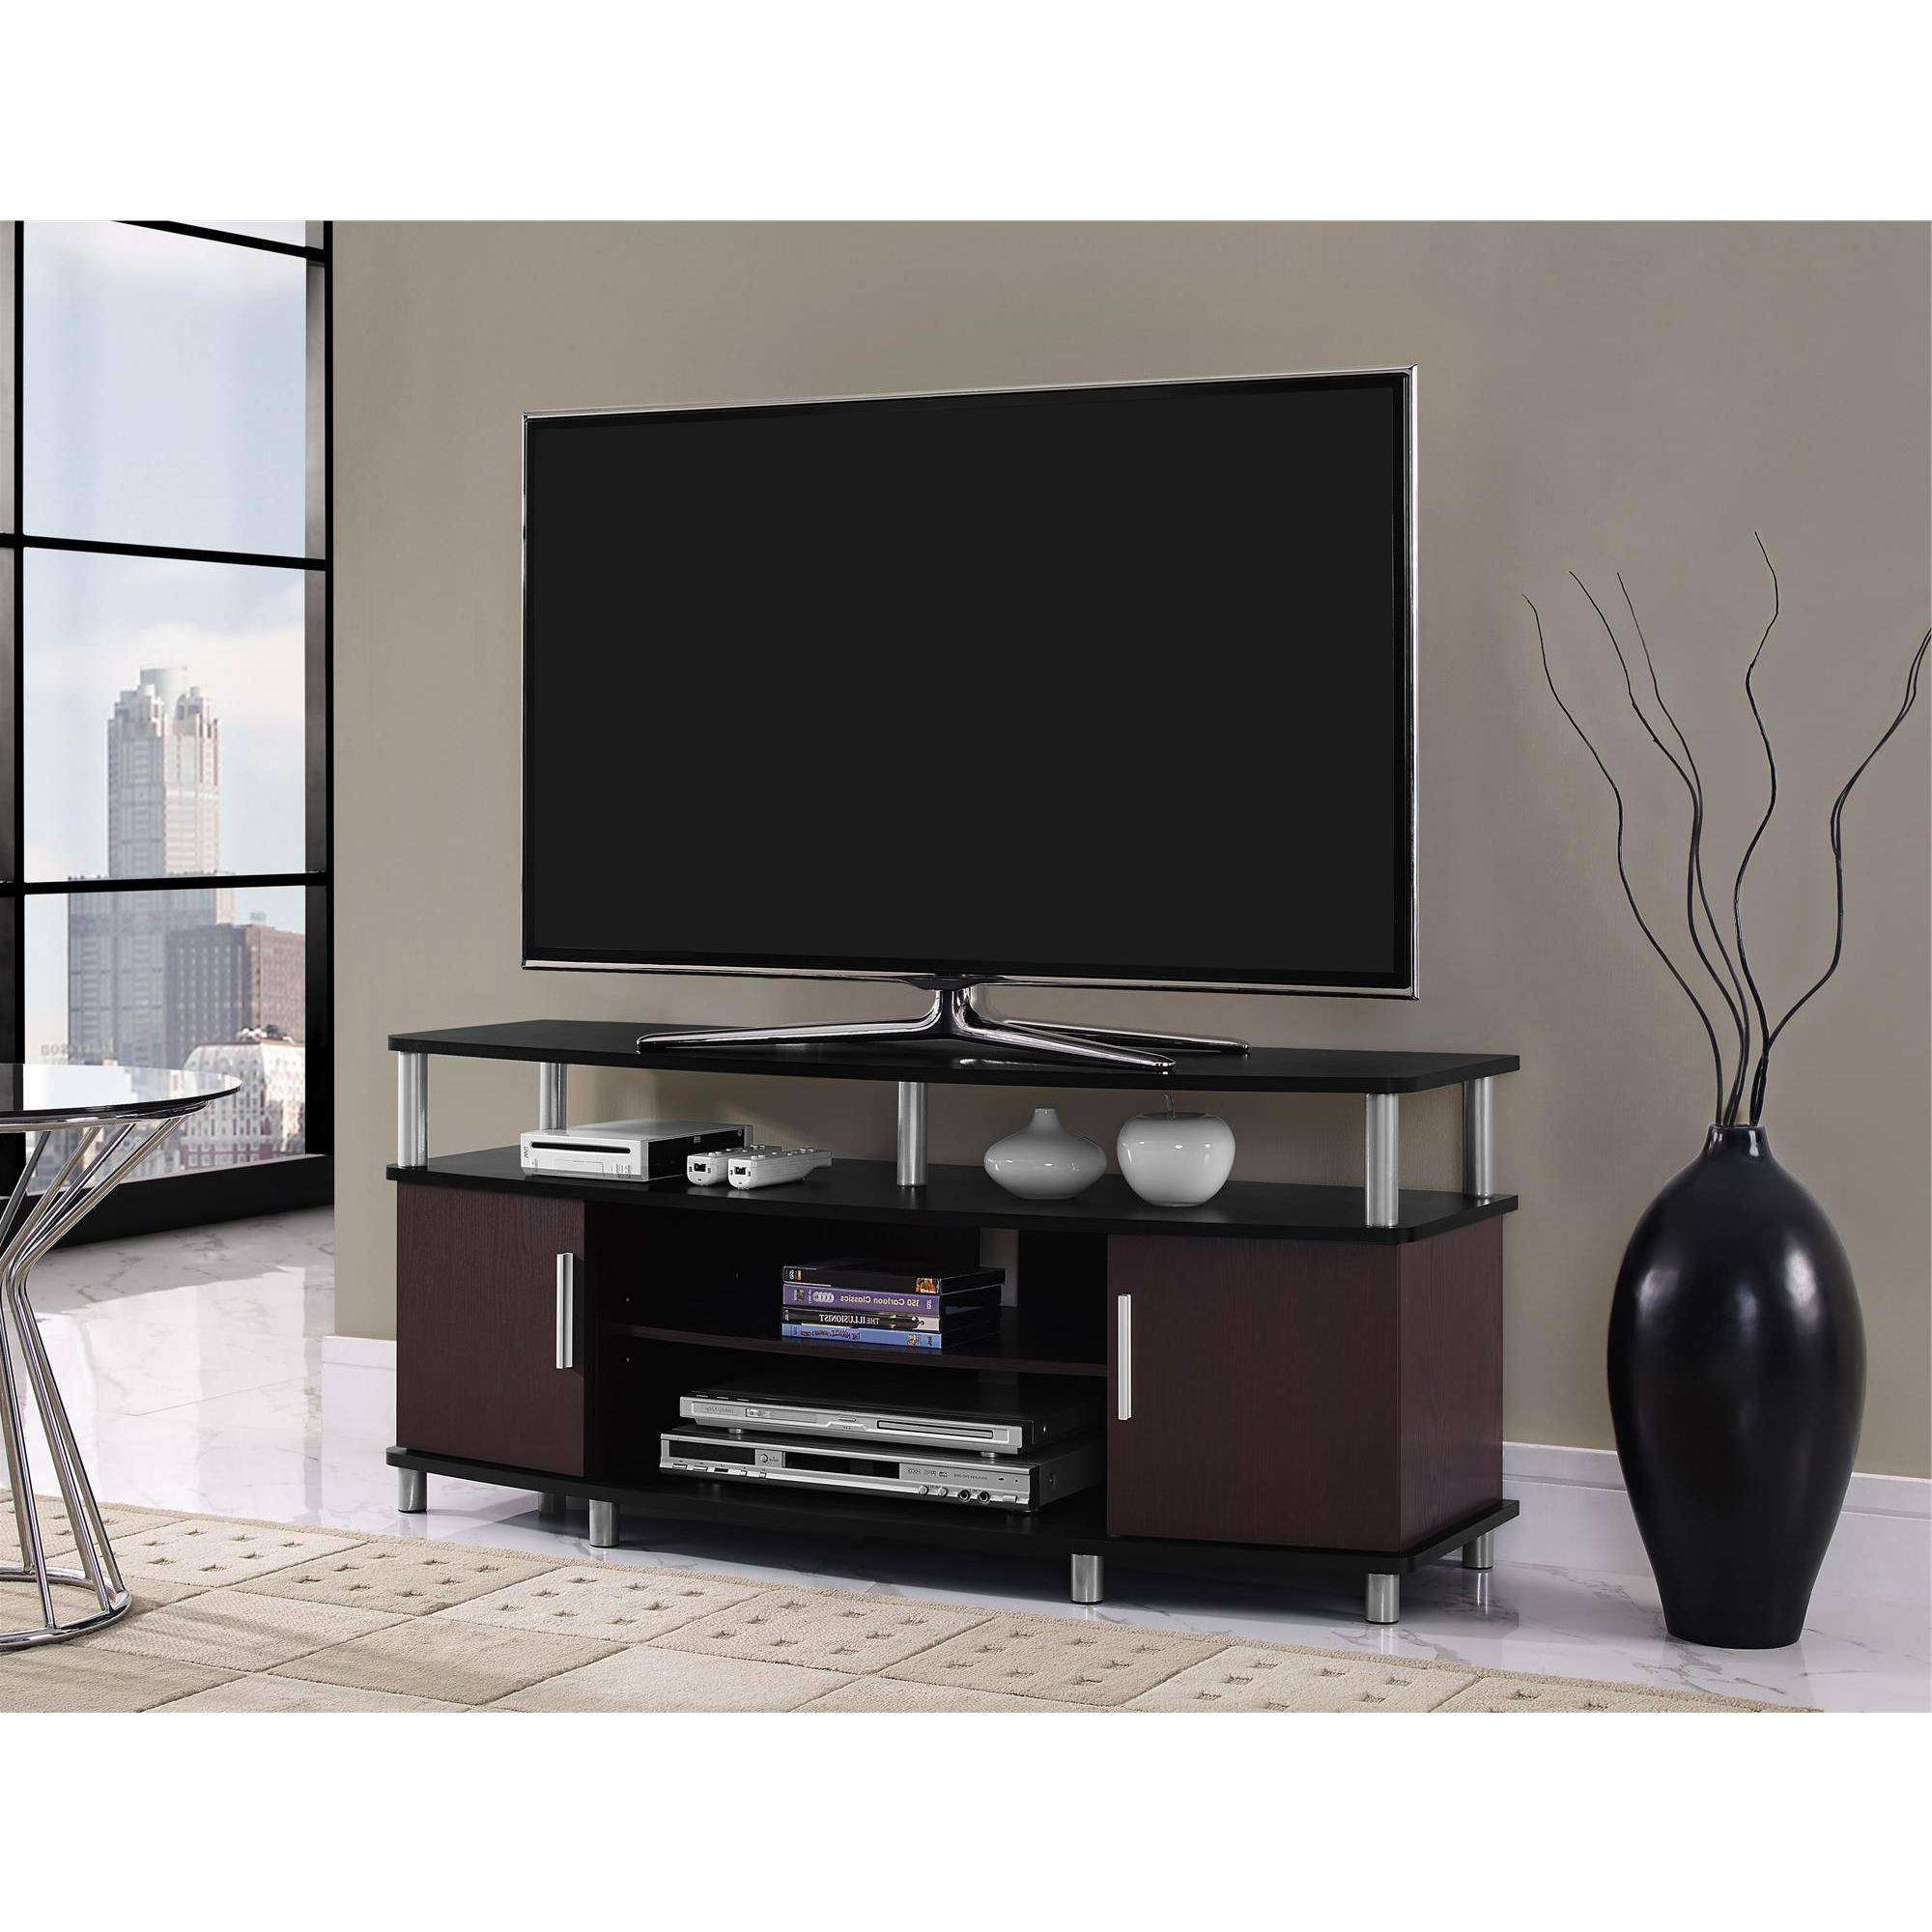 Fancy Tv Stands For 40 Inch Tv 80 In Home Decoration Ideas With Tv Intended For Fancy Tv Stands (View 15 of 15)